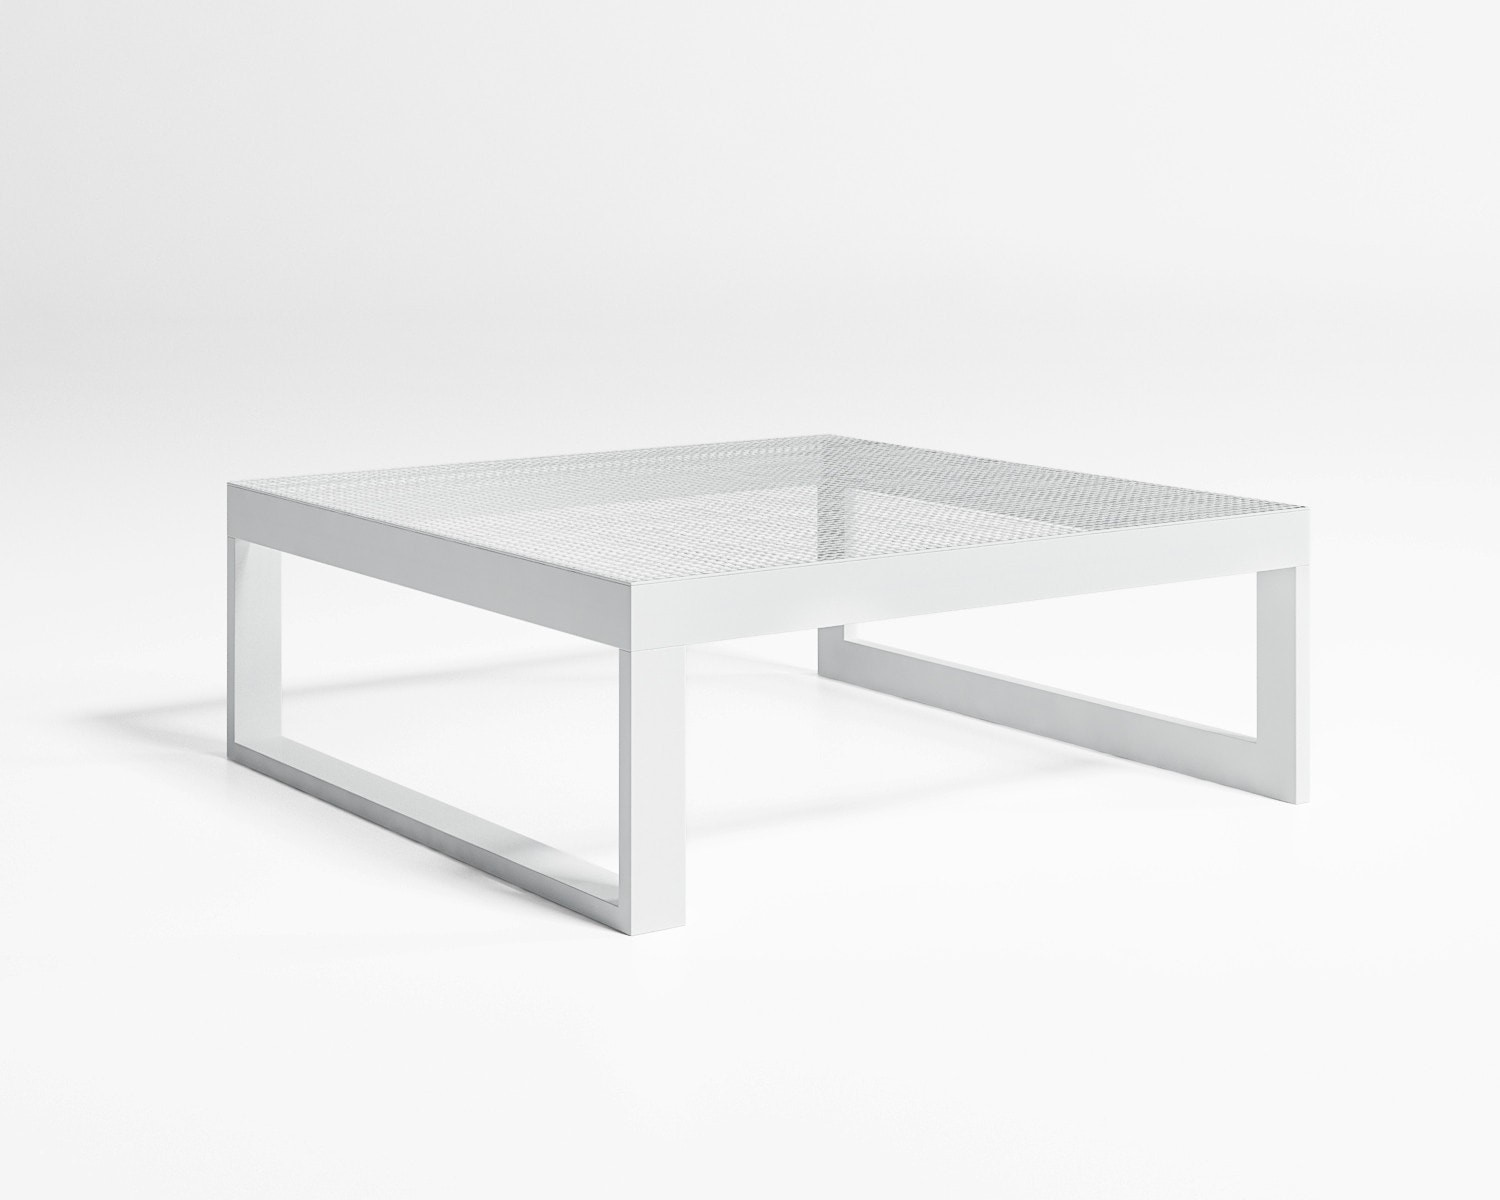 Blau Side Table for Chaiselounge